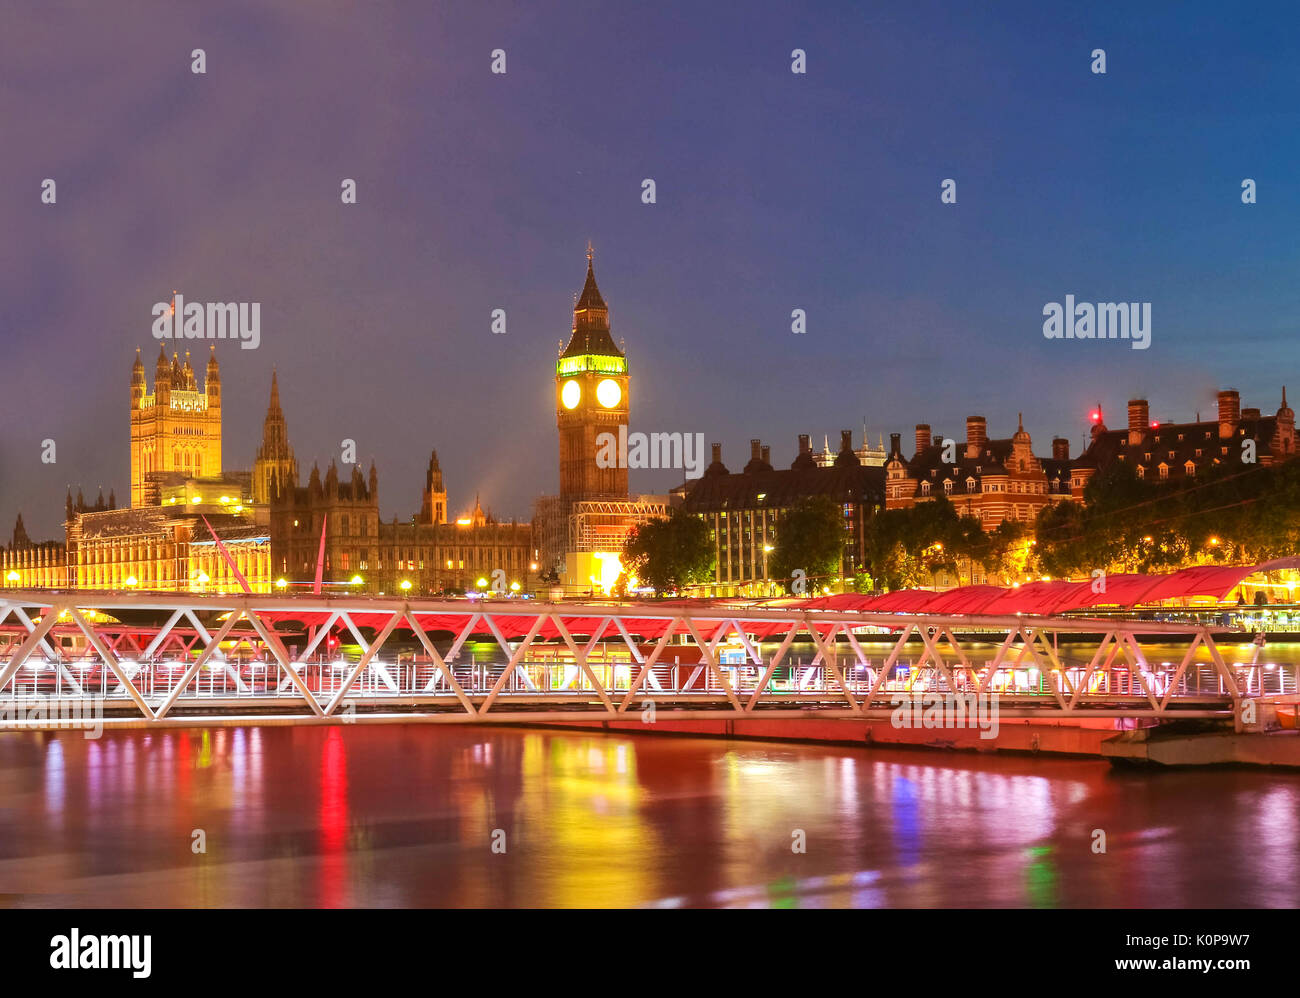 Big Ben and House of Parliament at night, London. - Stock Image